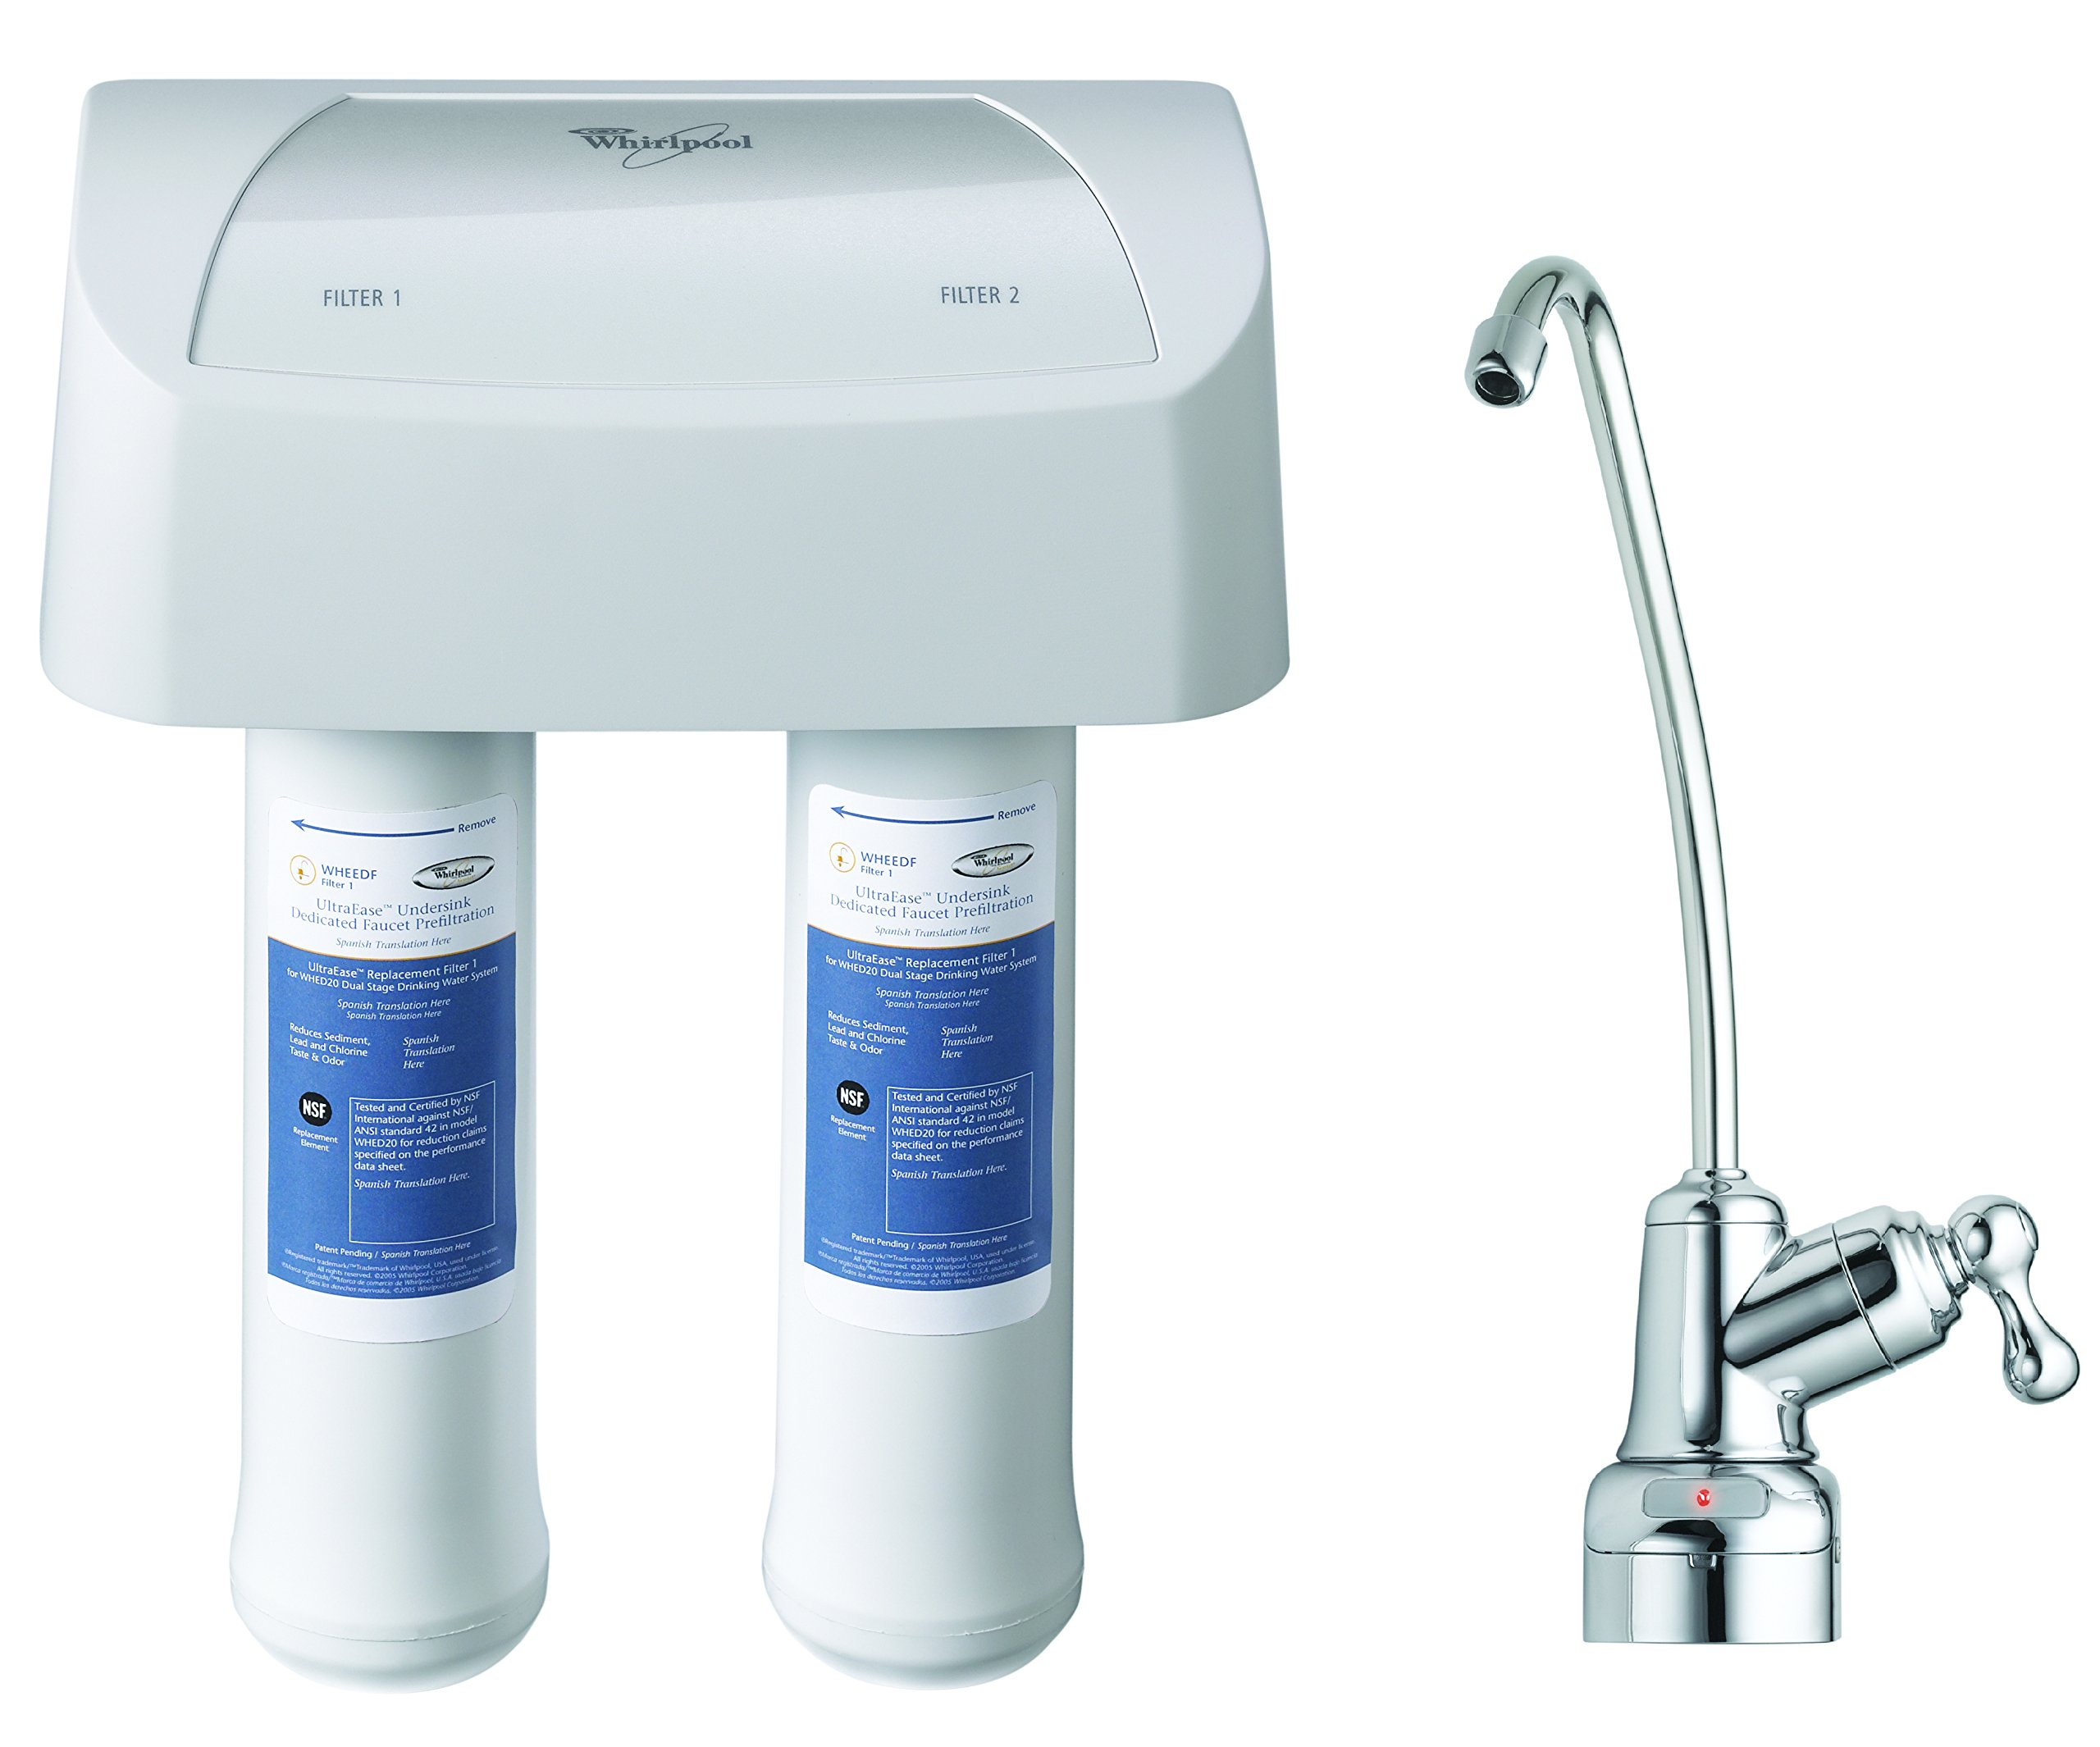 Whirlpool WHEEDF Dual Stage Replacement Pre/Post Water Filters (Fits Systems WHADUS5 & WHED20) by Whirlpool (Image #4)